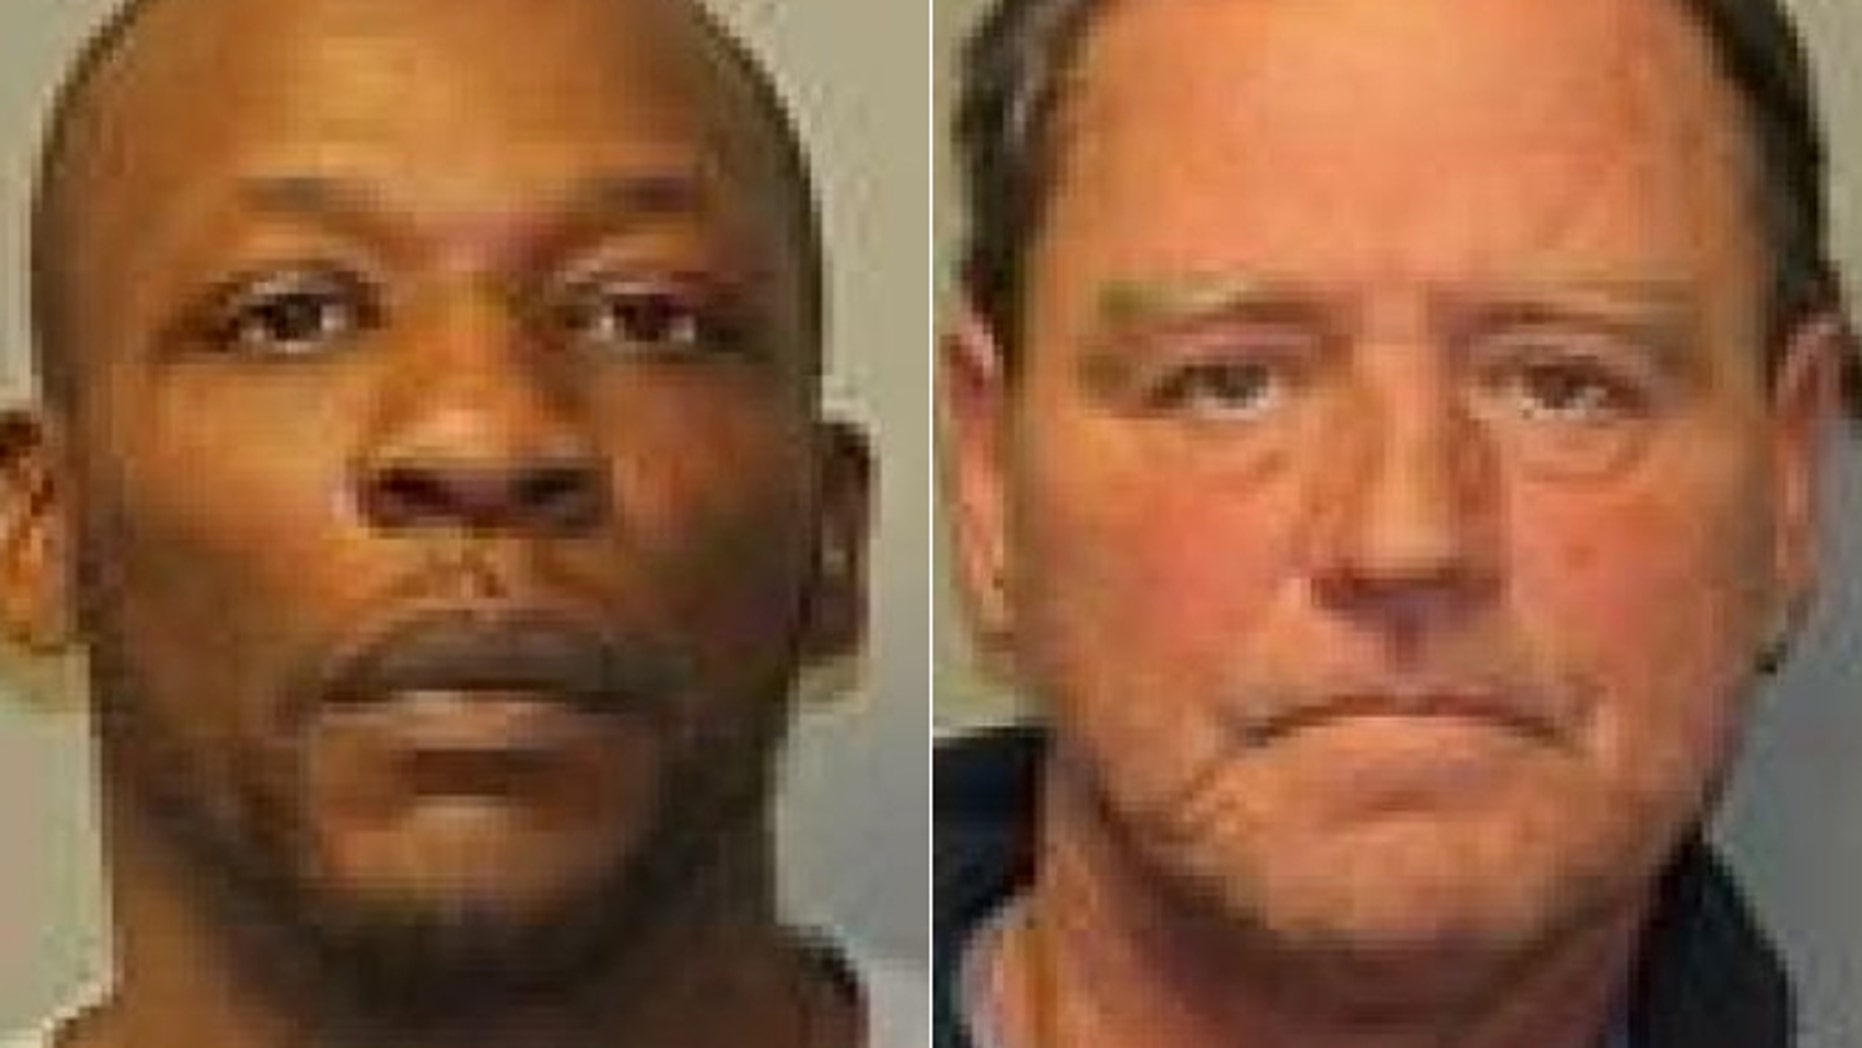 Police say Malcom Sidbury, left, was charged with driving while ability impaired by drugs after he called police on Thomas Robbins, who allegedly had a blood-alcohol level of .25 percent.